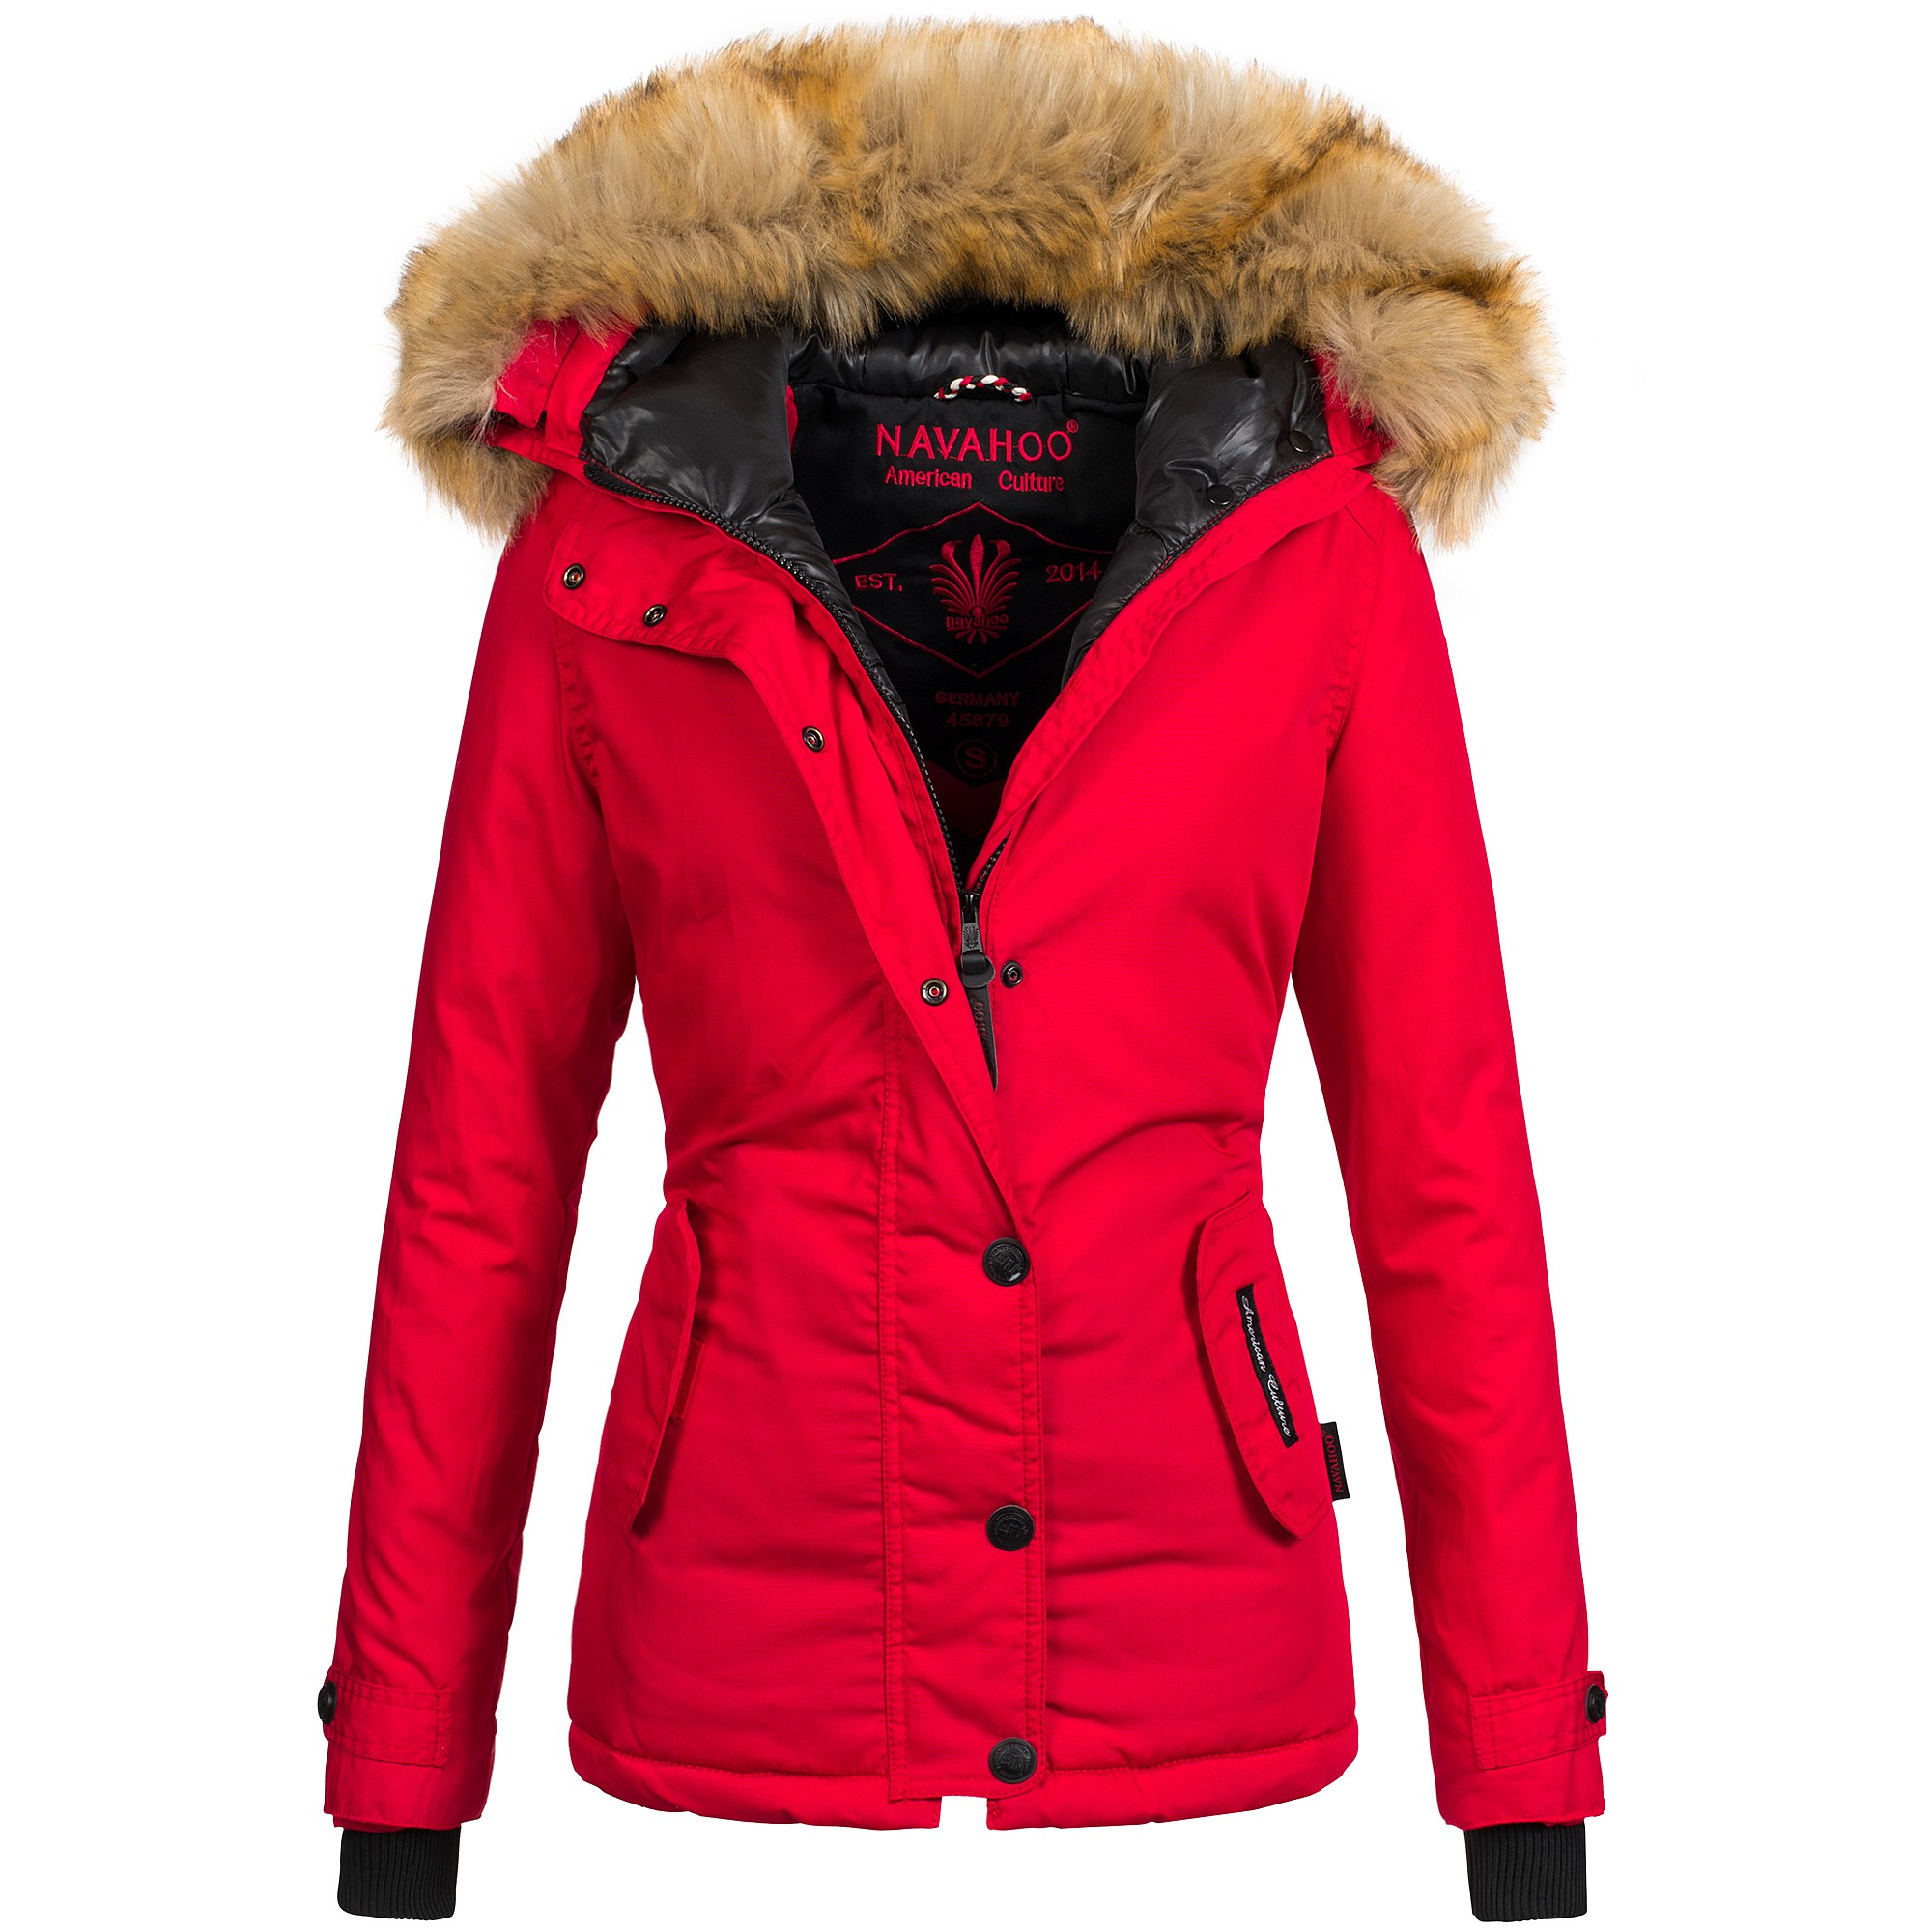 navahoo laura2 damen jacke parka mantel winterjacke warm xxl luxus kunstpelz ebay. Black Bedroom Furniture Sets. Home Design Ideas